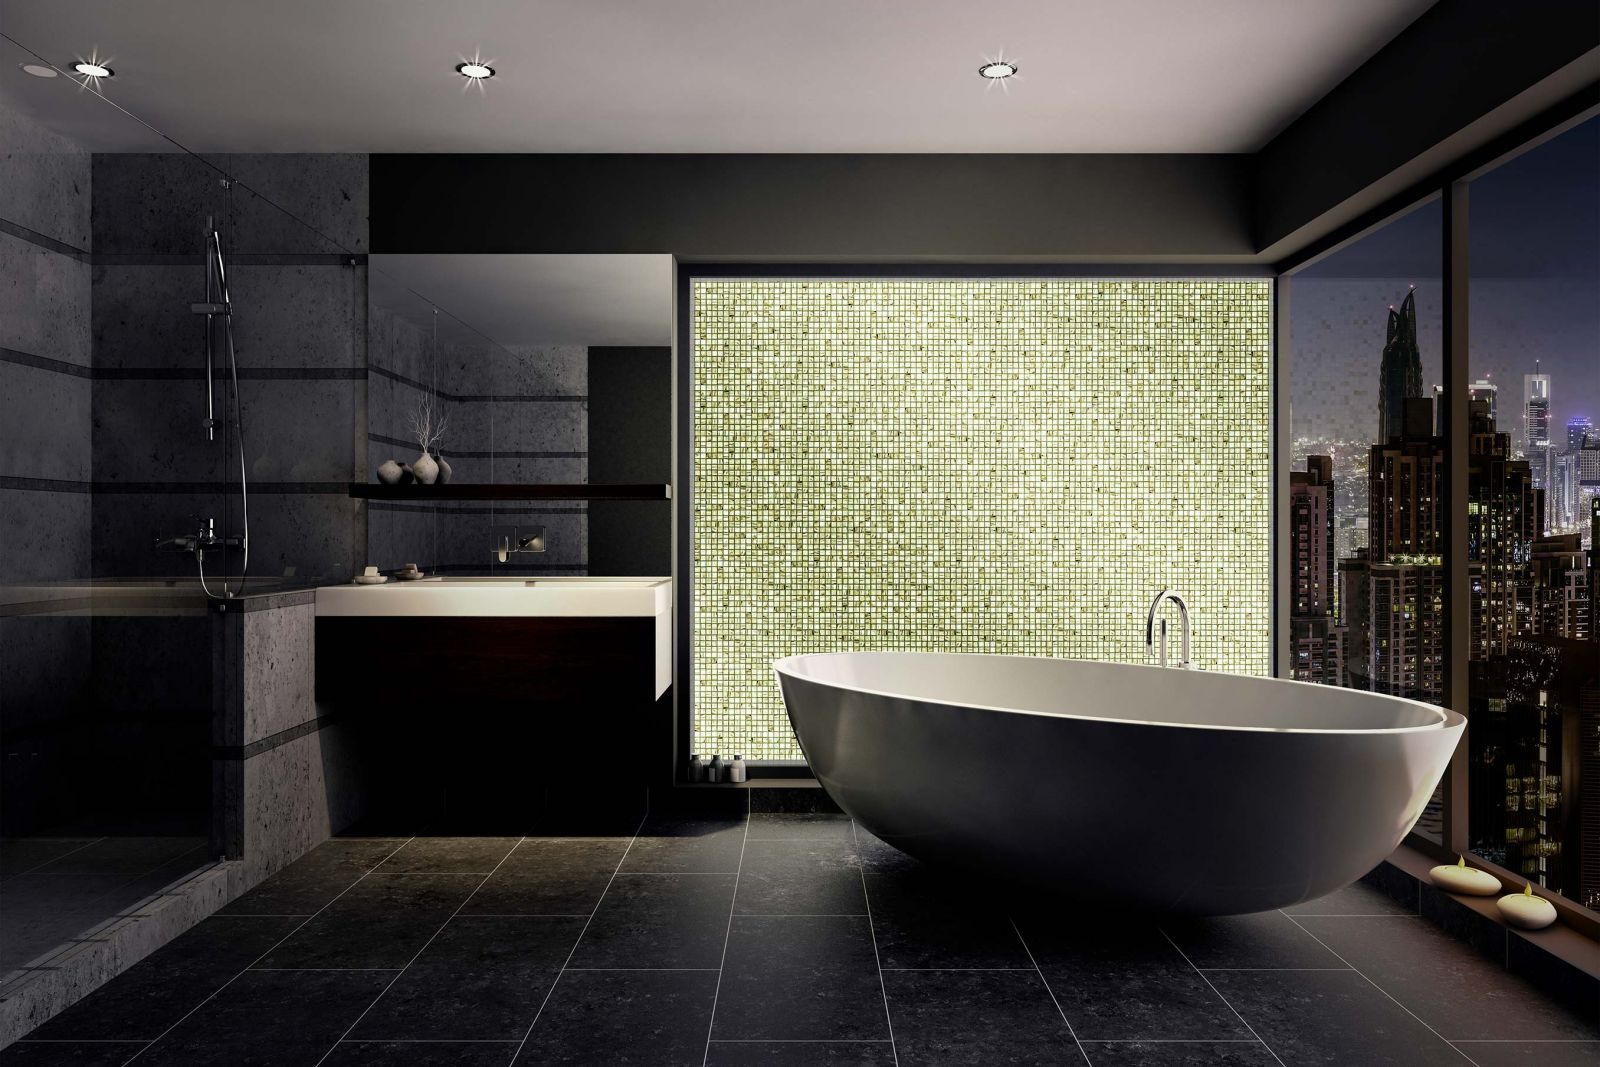 Image of a bathroom with bathtub and citysky view showing a pattern of greenish volatiles mosaics